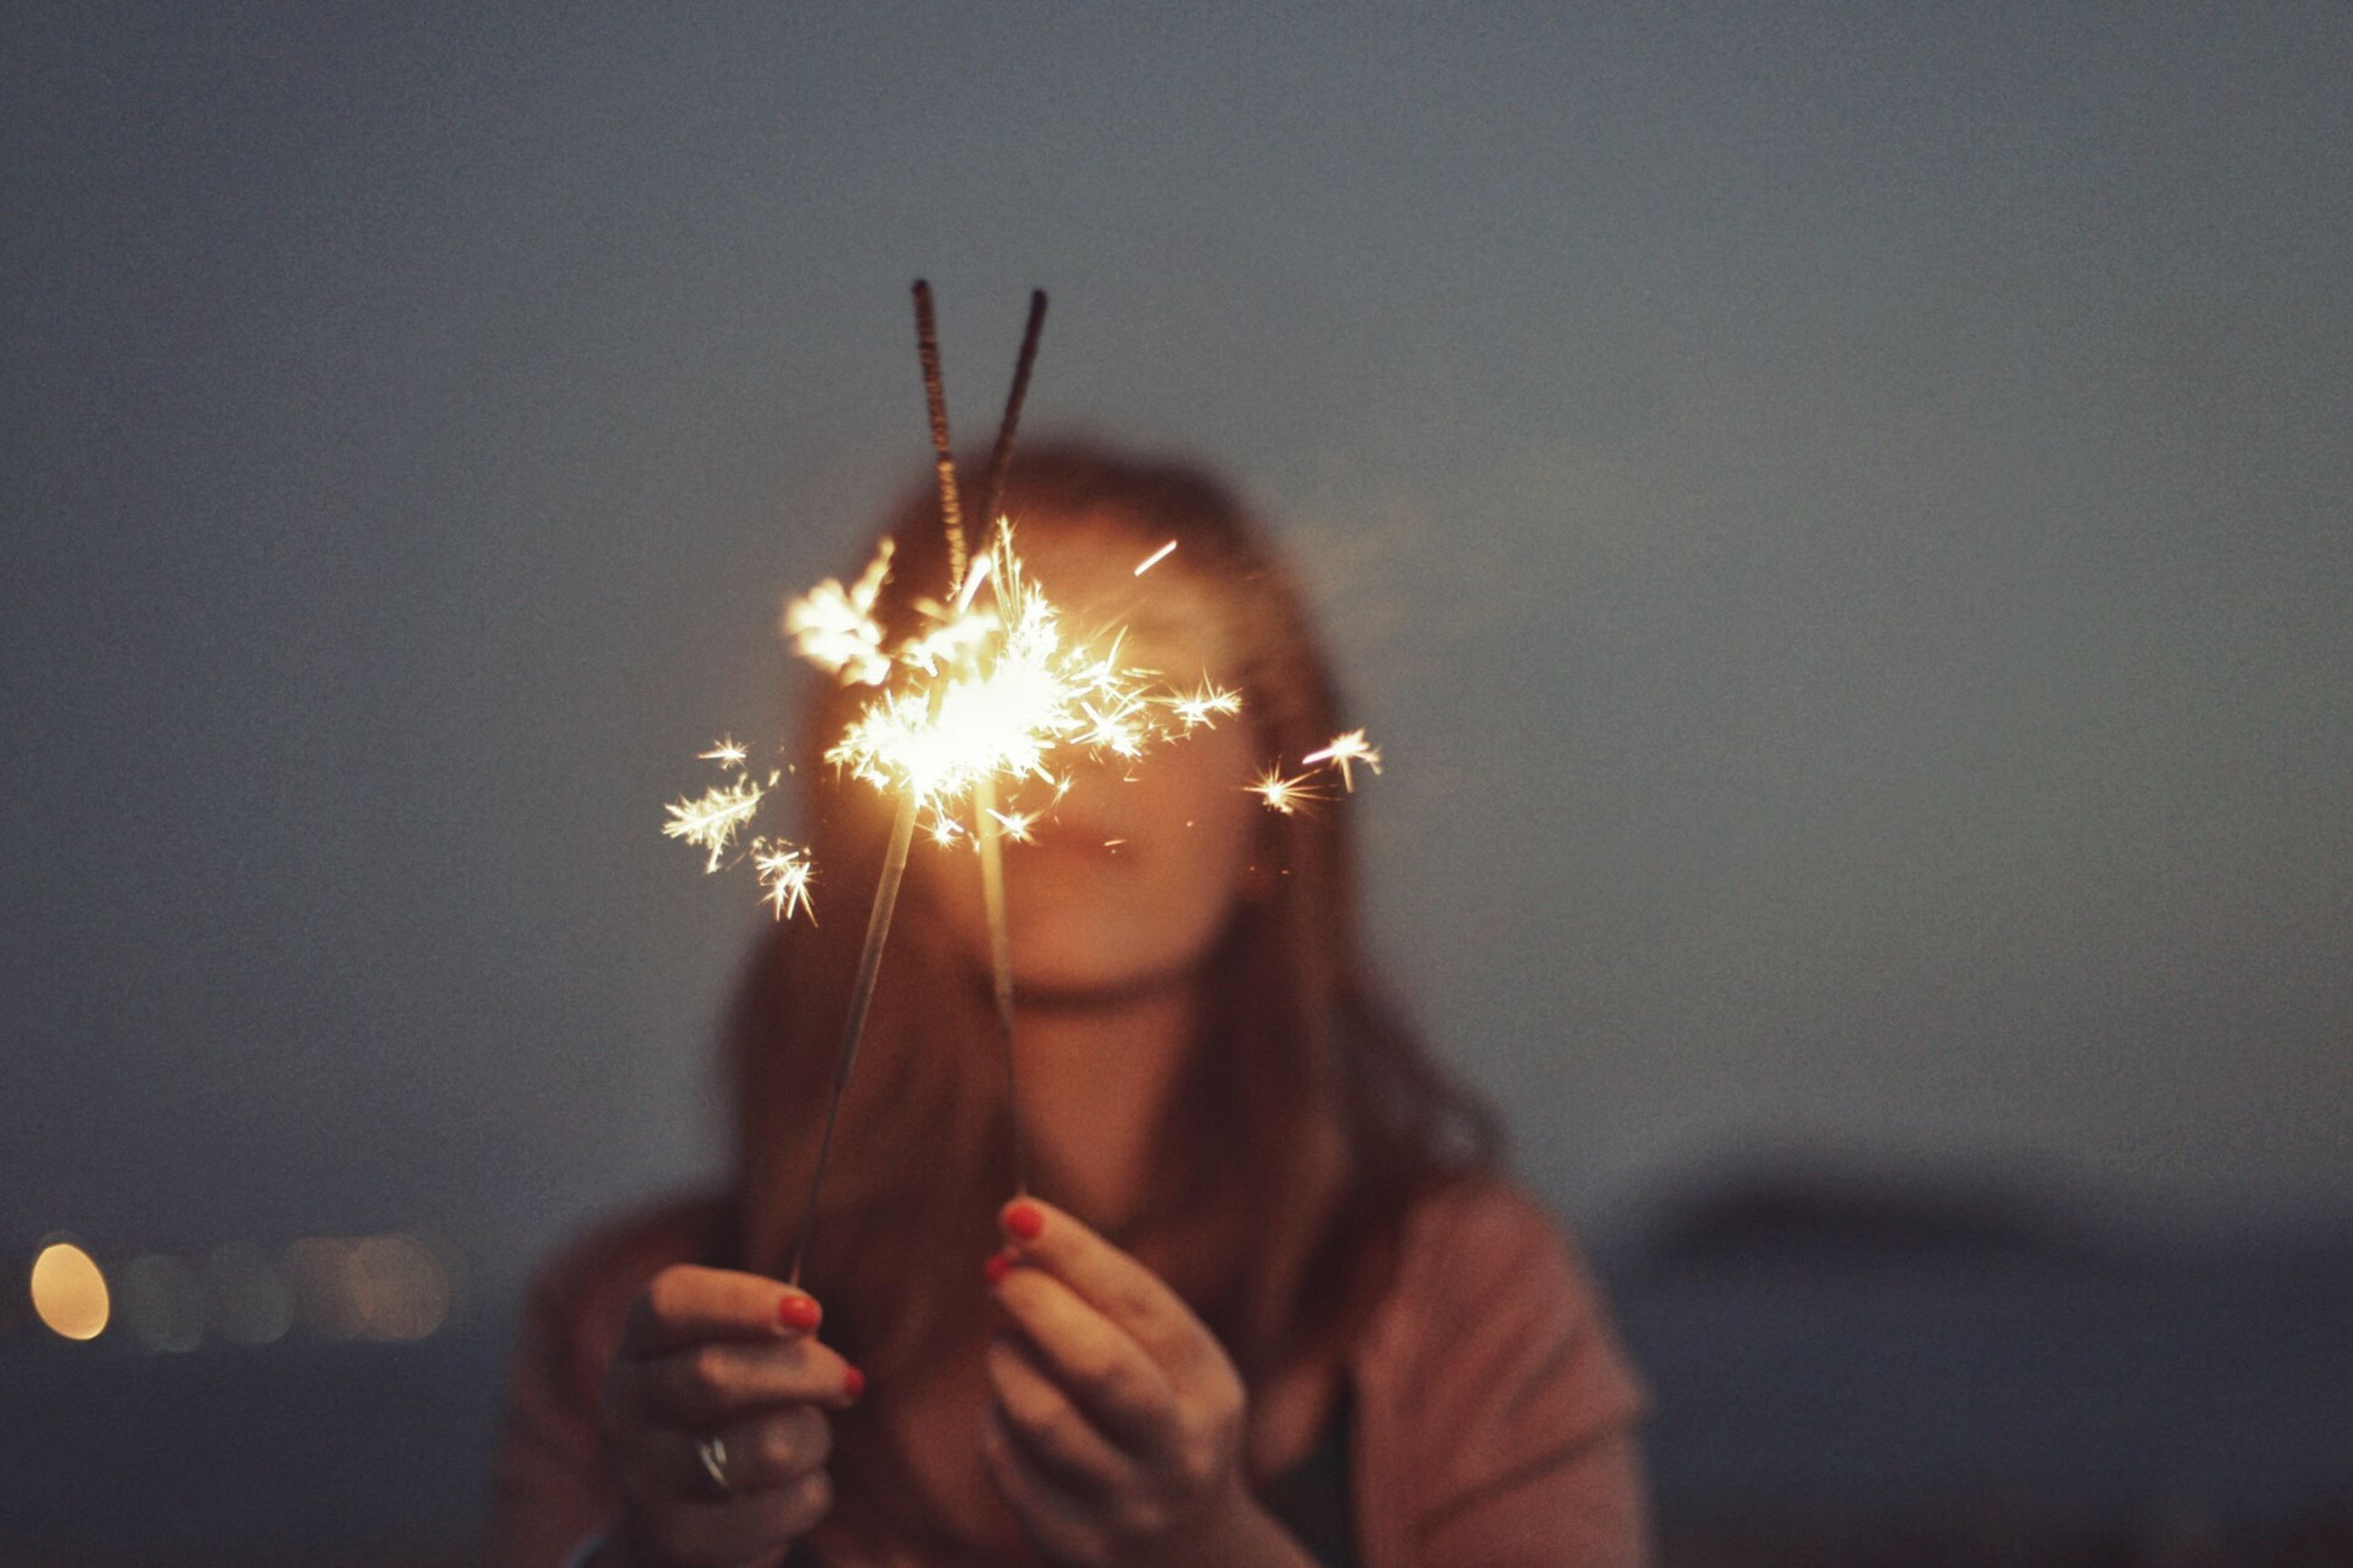 one person, firework, real people, illuminated, holding, leisure activity, burning, sparkler, lifestyles, headshot, celebration, motion, event, glowing, portrait, arts culture and entertainment, focus on foreground, firework display, front view, firework - man made object, sparks